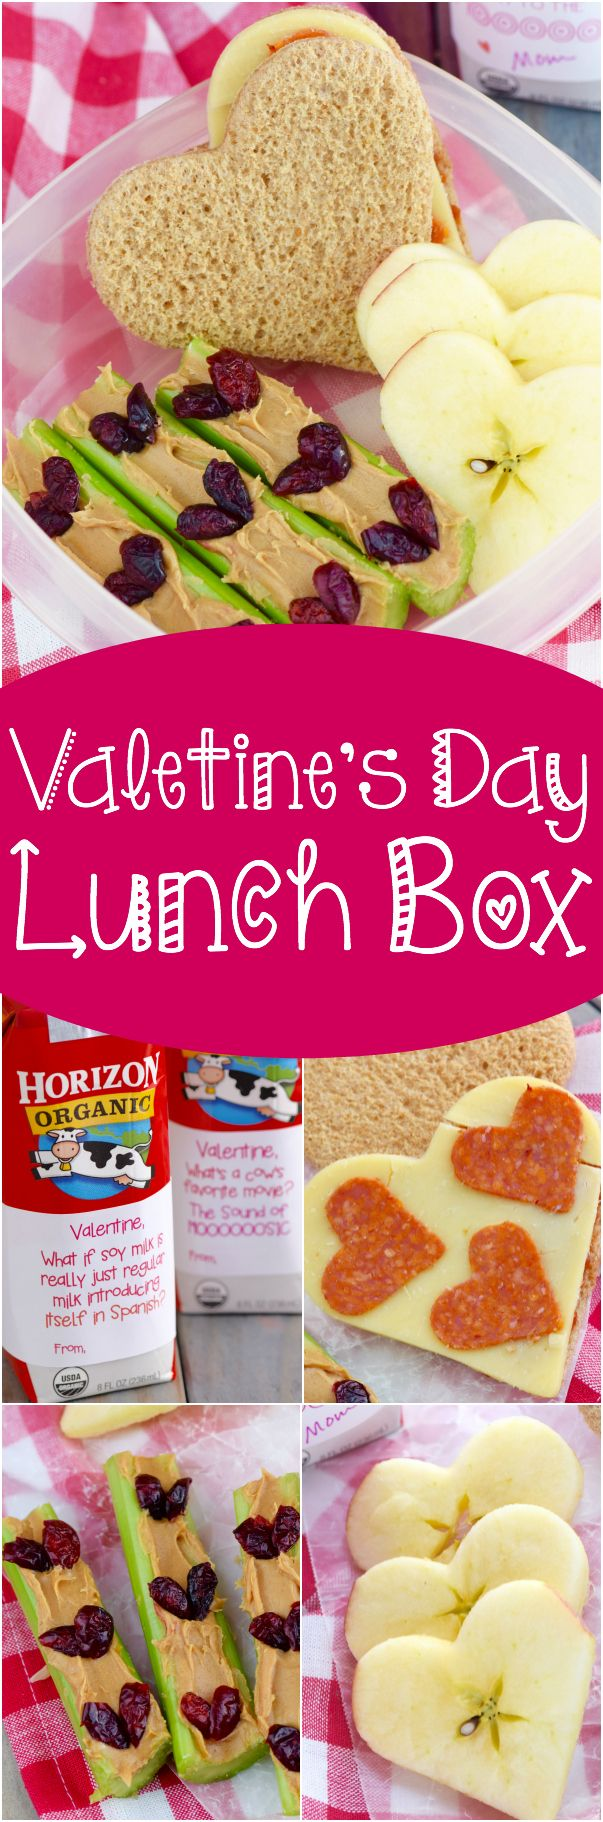 This Valentine's Day Lunch Box is super cute. Use Sunbutter or soybutter to make it nutfree.